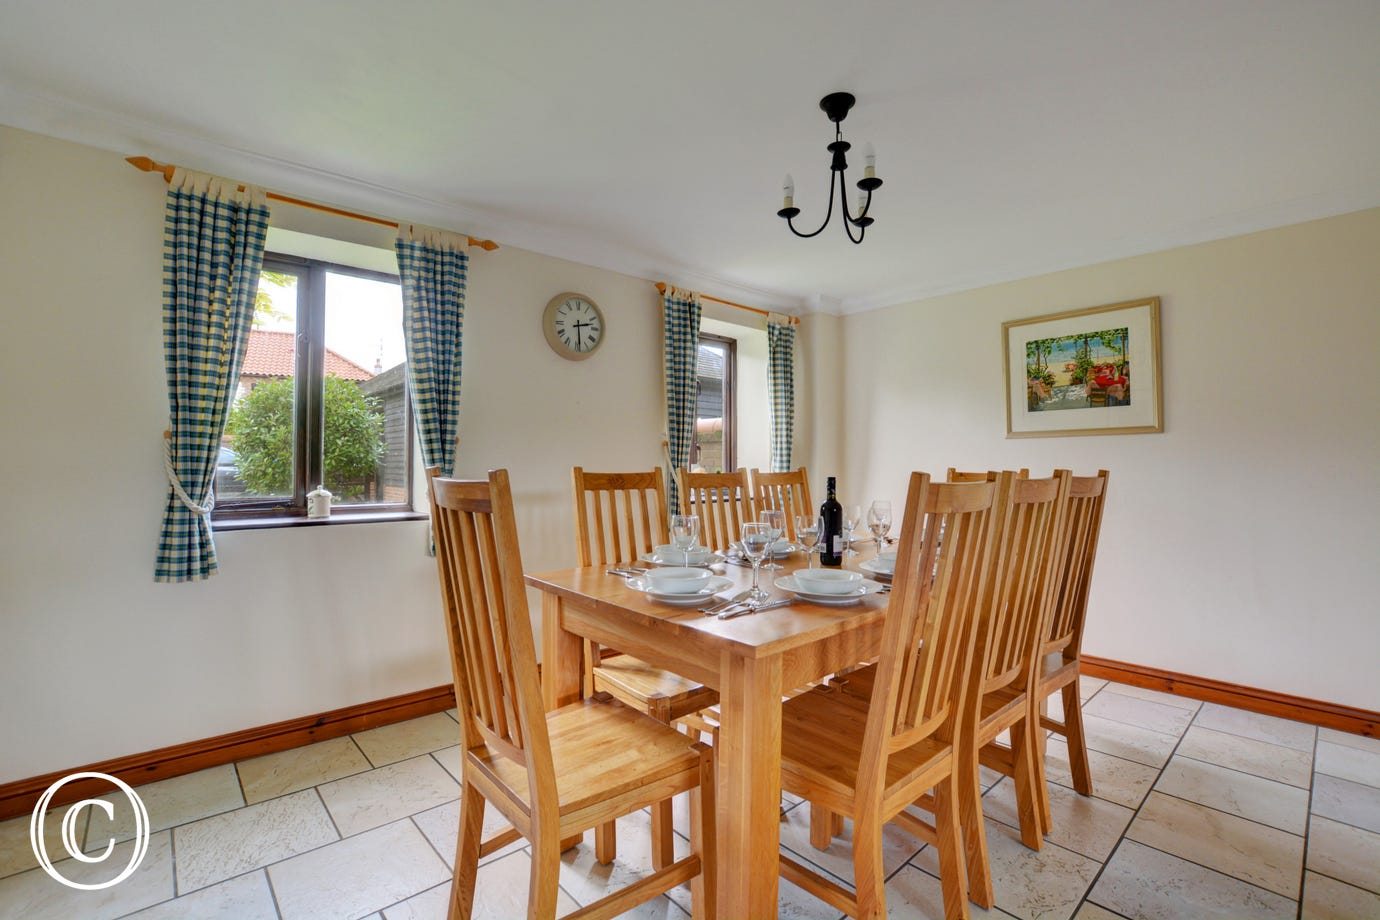 This lovely spacious dining room opens off the kitchen and is the perfect place for family meals